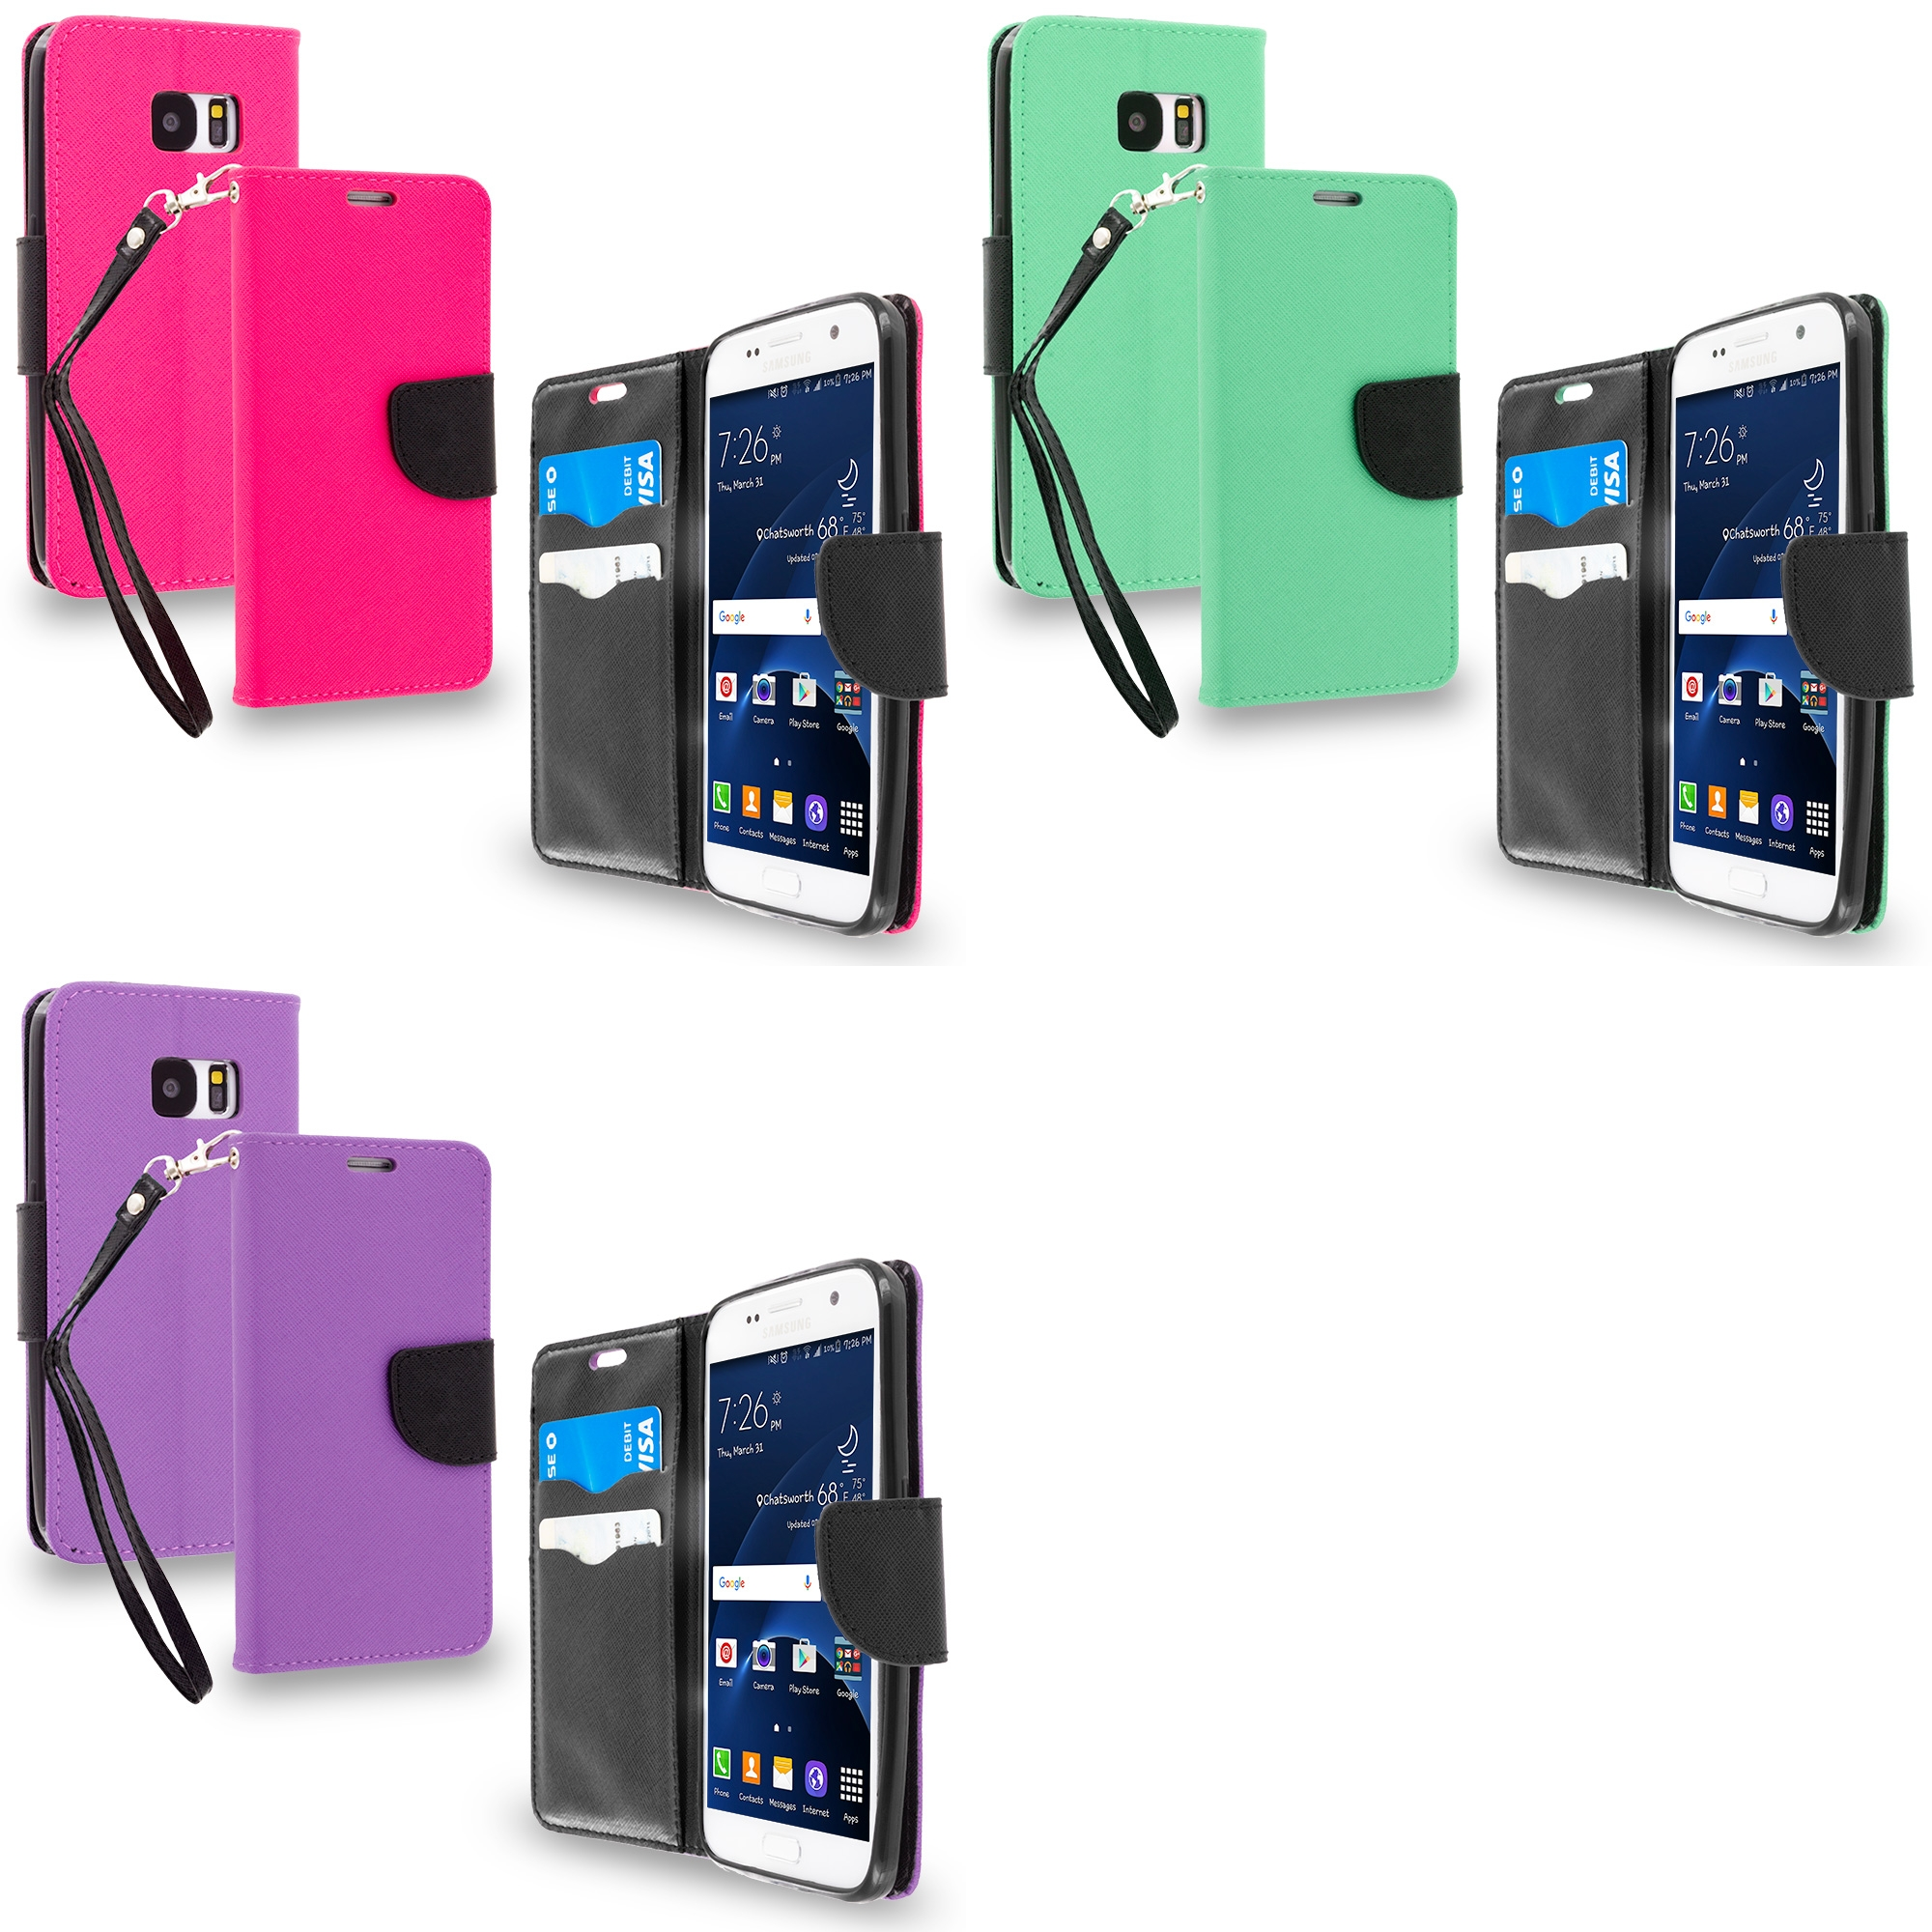 Samsung Galaxy S7 Combo Pack : Hot Pink / Black Leather Flip Wallet Pouch TPU Case Cover with ID Card Slots